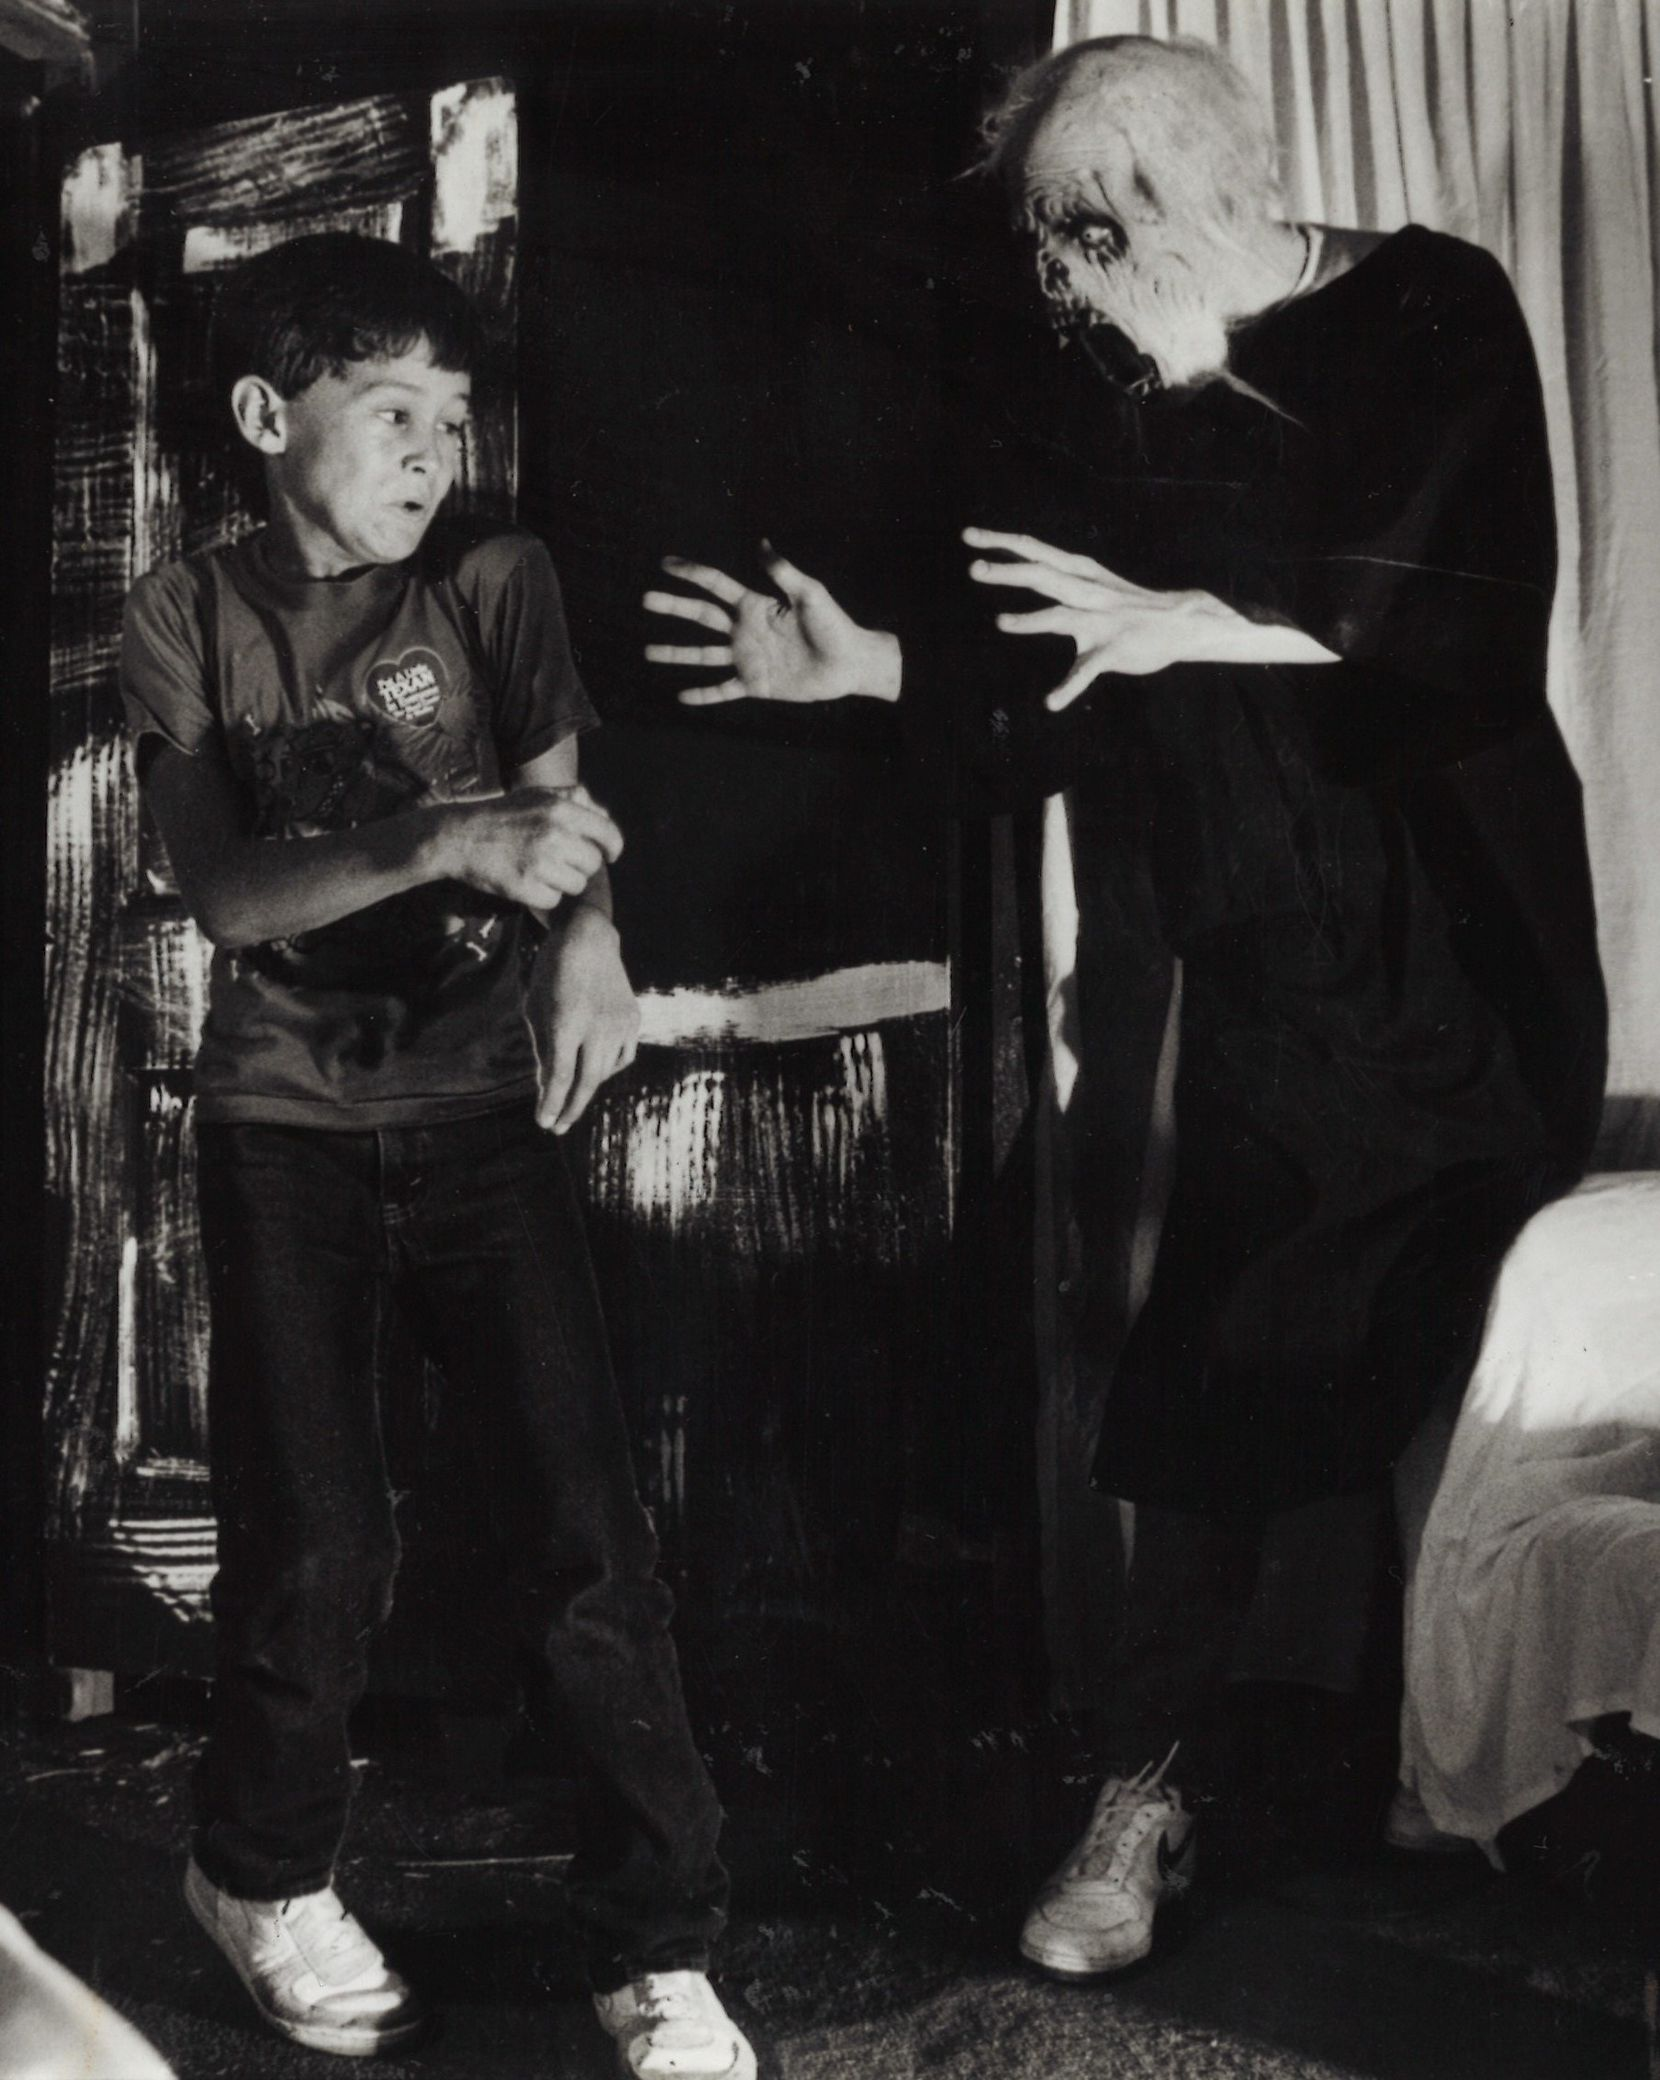 Jason Works gets a scare from ghoul Craig Faukner, a student at Garland High School, during preview night for the March of Dimes Haunted House in October 1986.